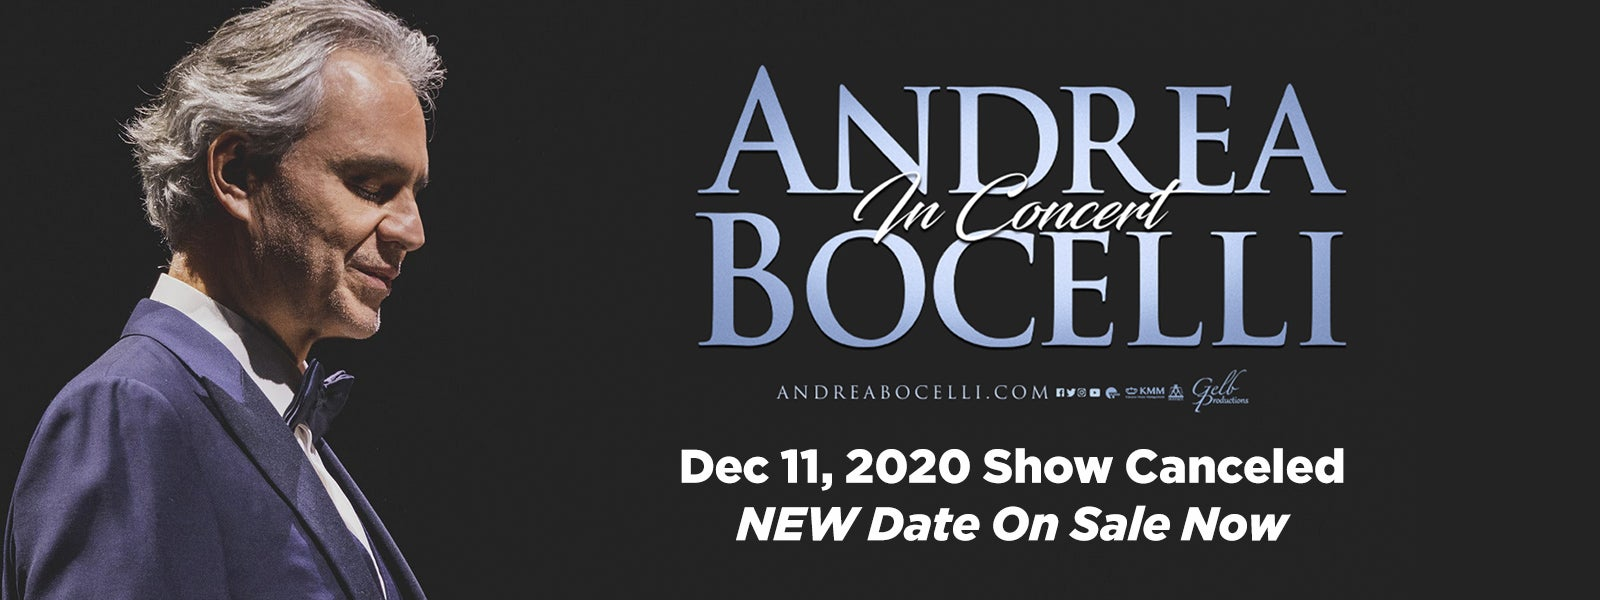 Andrea Bocelli - Canceled